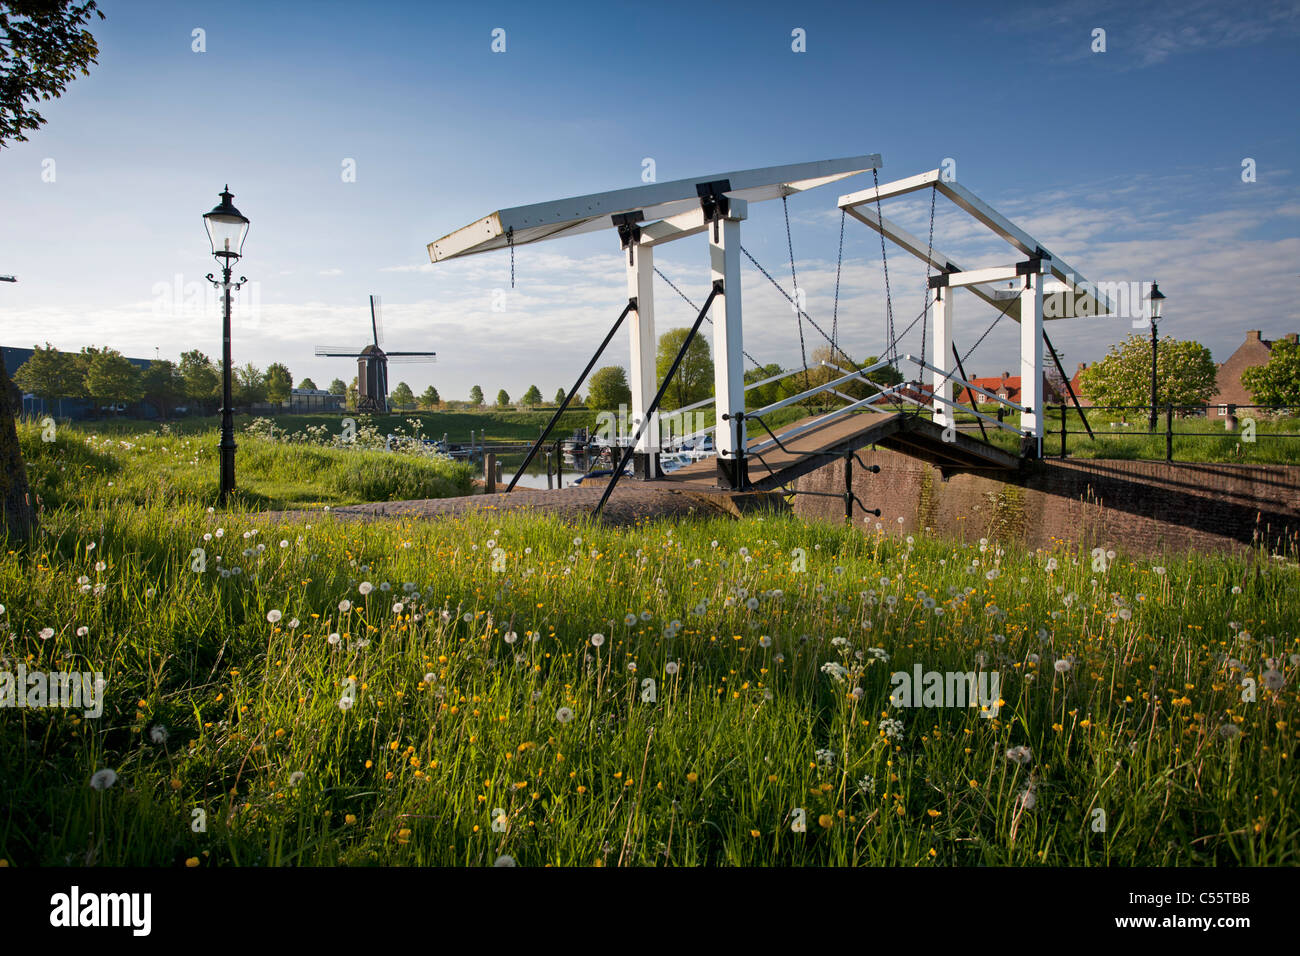 The Netherlands, Fortified city of Heusden. Lift bridge and windmill. - Stock Image